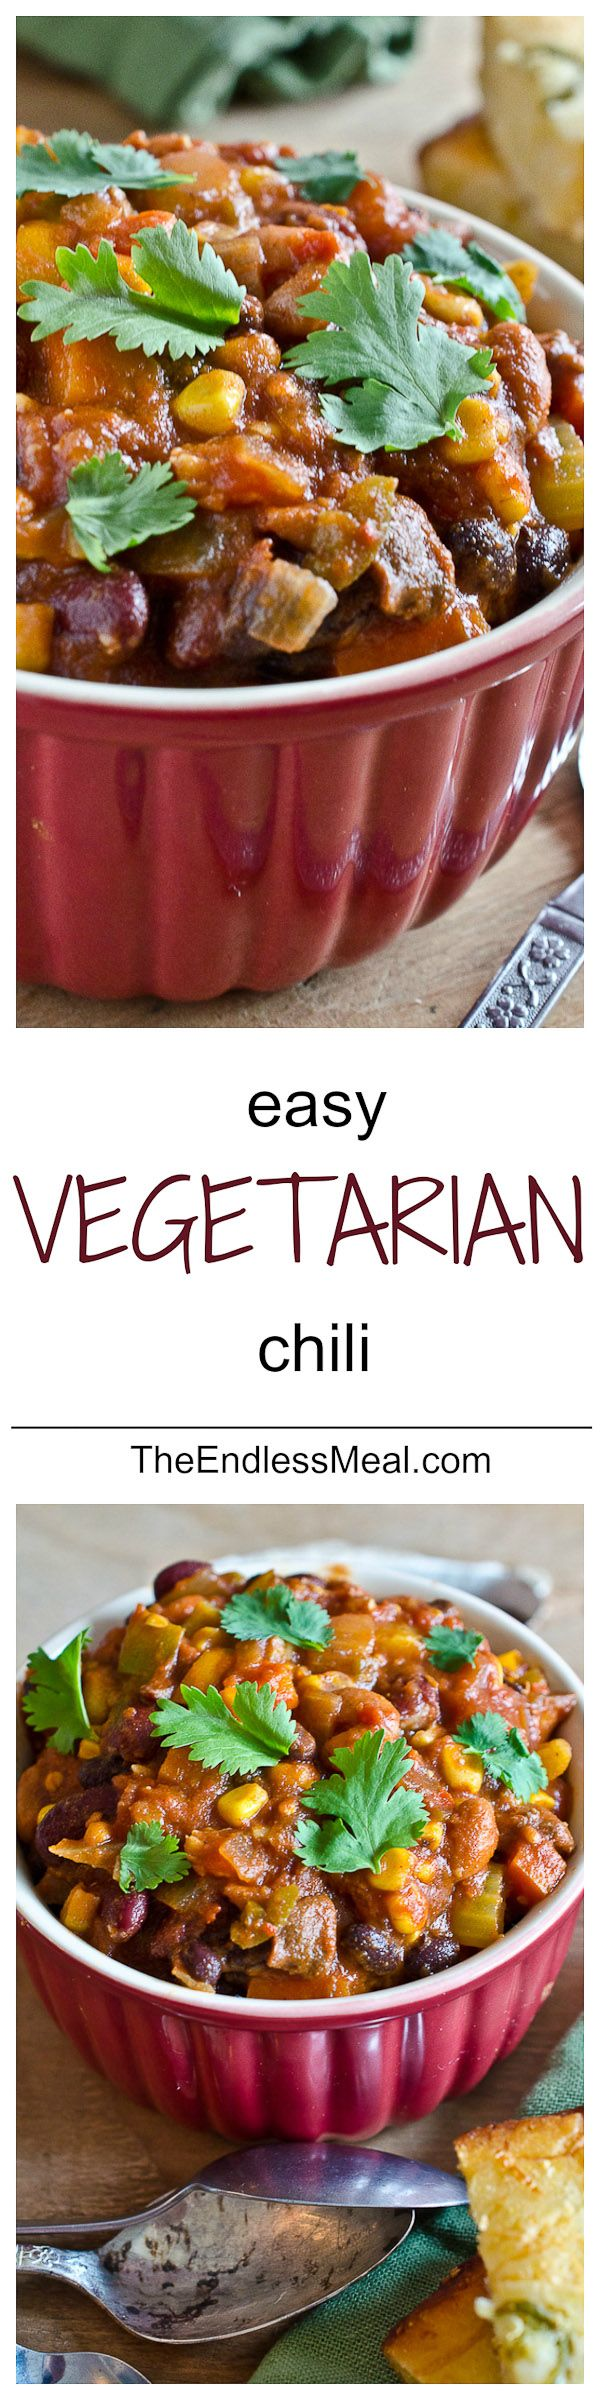 Easy Vegetarian Chili Recipe I added vegetarian meat and it was much improved.  Very good then.